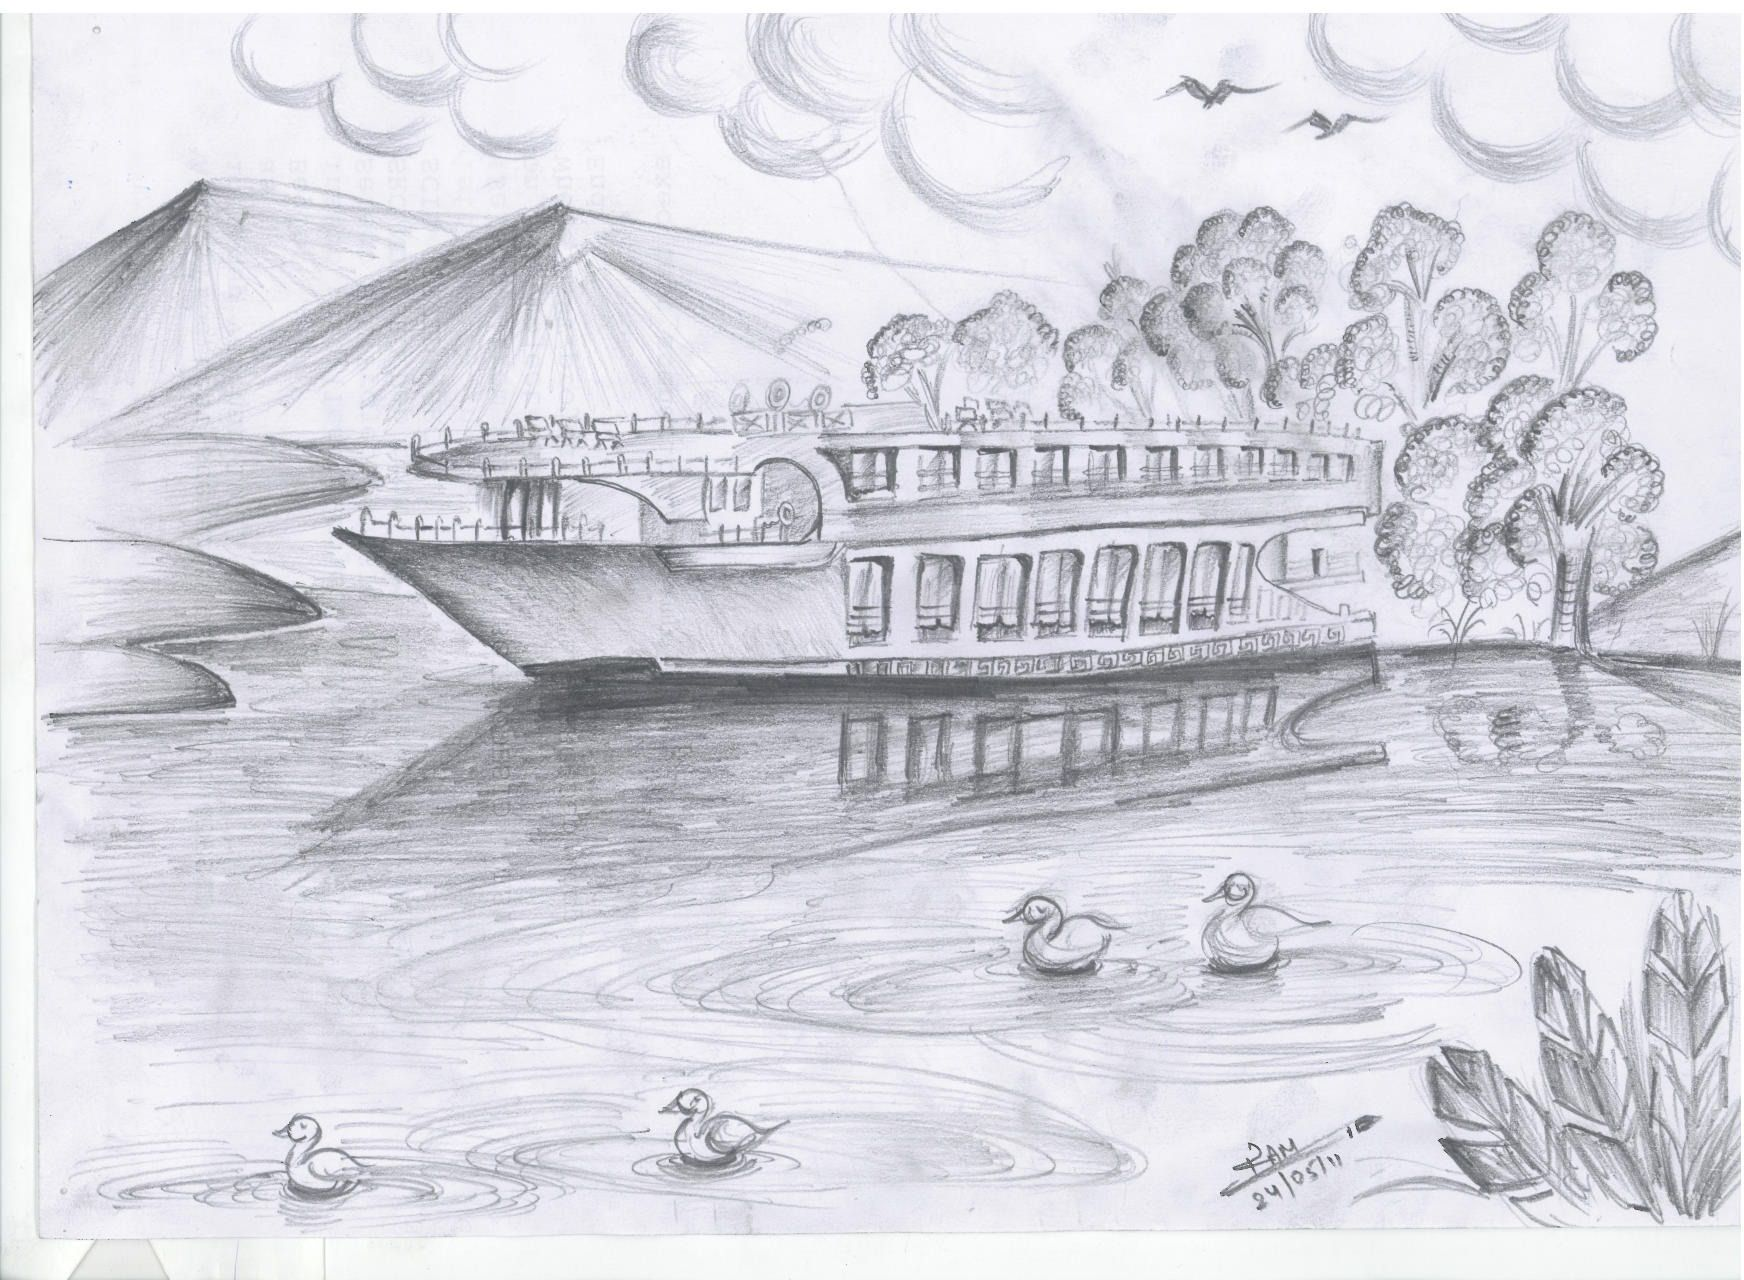 Pencil Art Landscape Wallpapers Top Free Pencil Art Landscape Backgrounds Wallpaperaccess How to draw landscape scenery step by step with pencil sketch ,vilage scenery drawing art camlin pencil. pencil art landscape wallpapers top